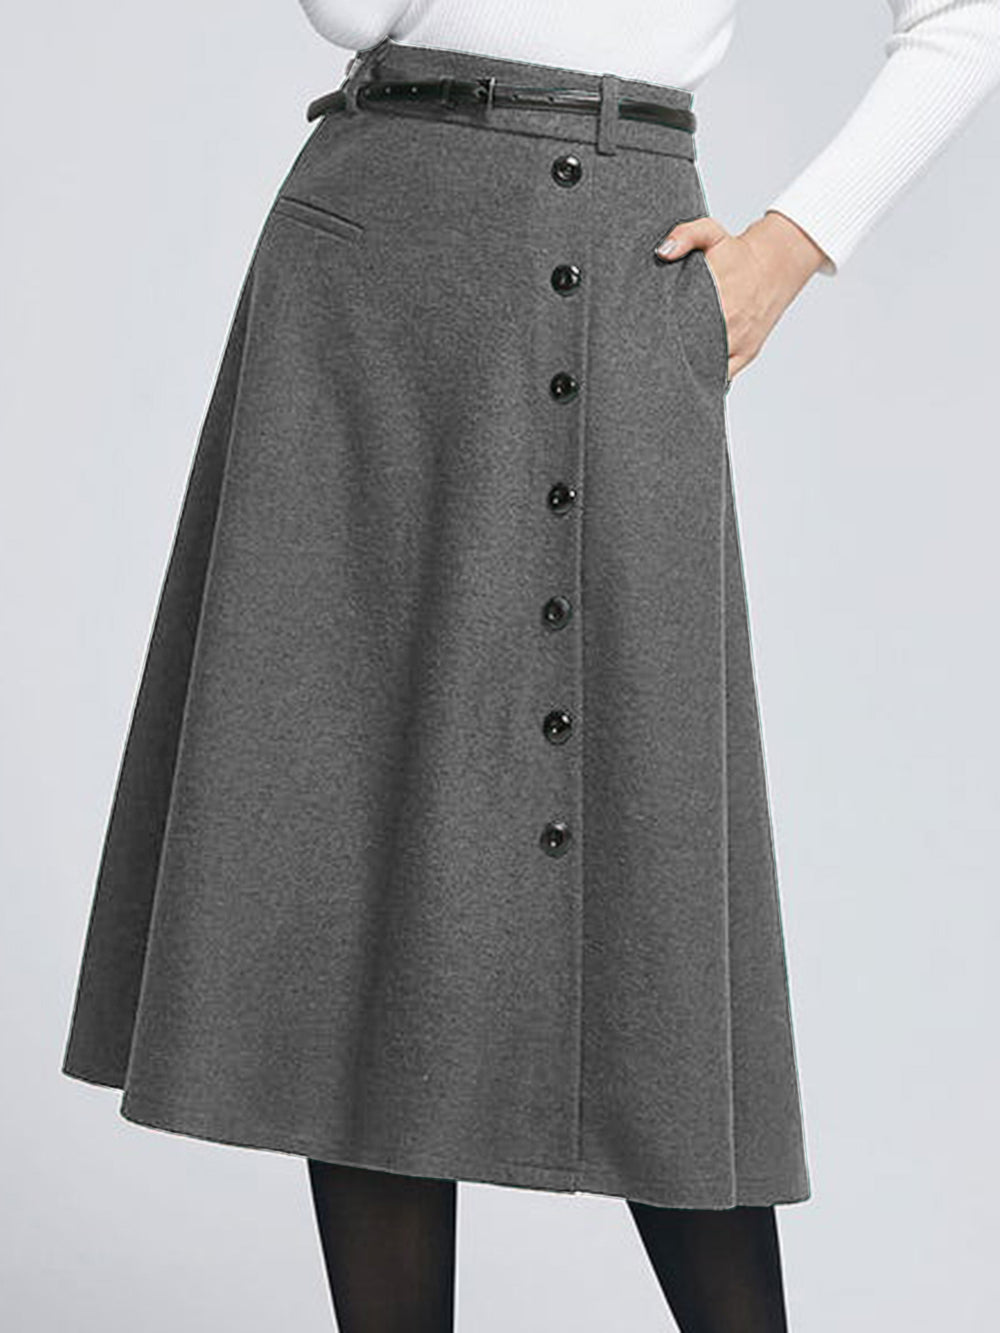 Plus Size Green Elegant Wool Blend Skirts